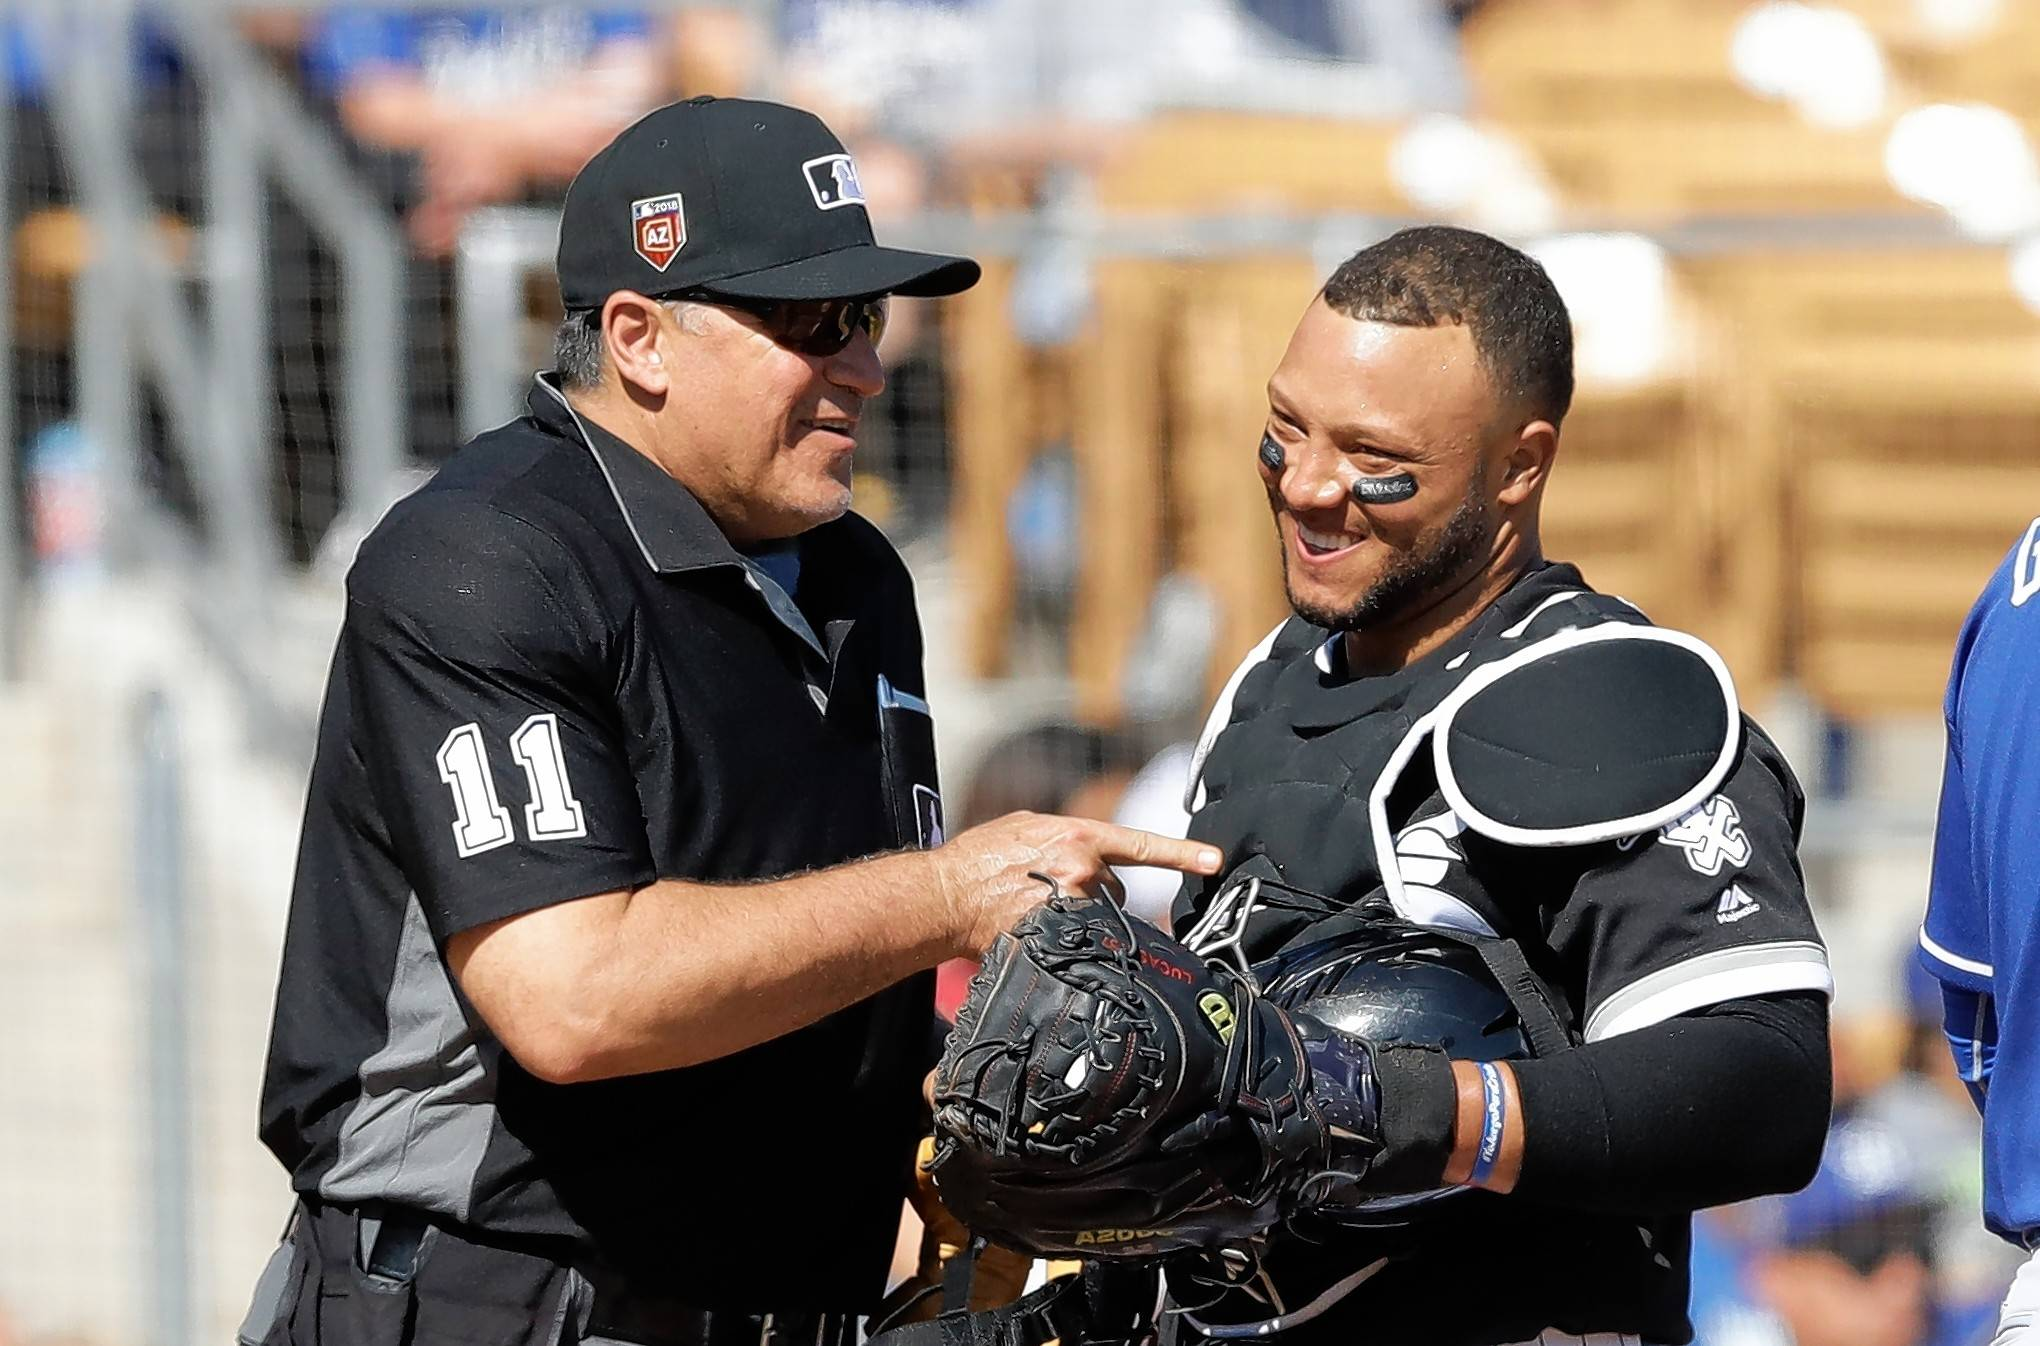 Home plate umpire Tony Randazzo talks with Chicago White Sox catcher Welington Castillo during the third inning of a spring training baseball game, Friday, March 2, 2018, in Glendale, Ariz.